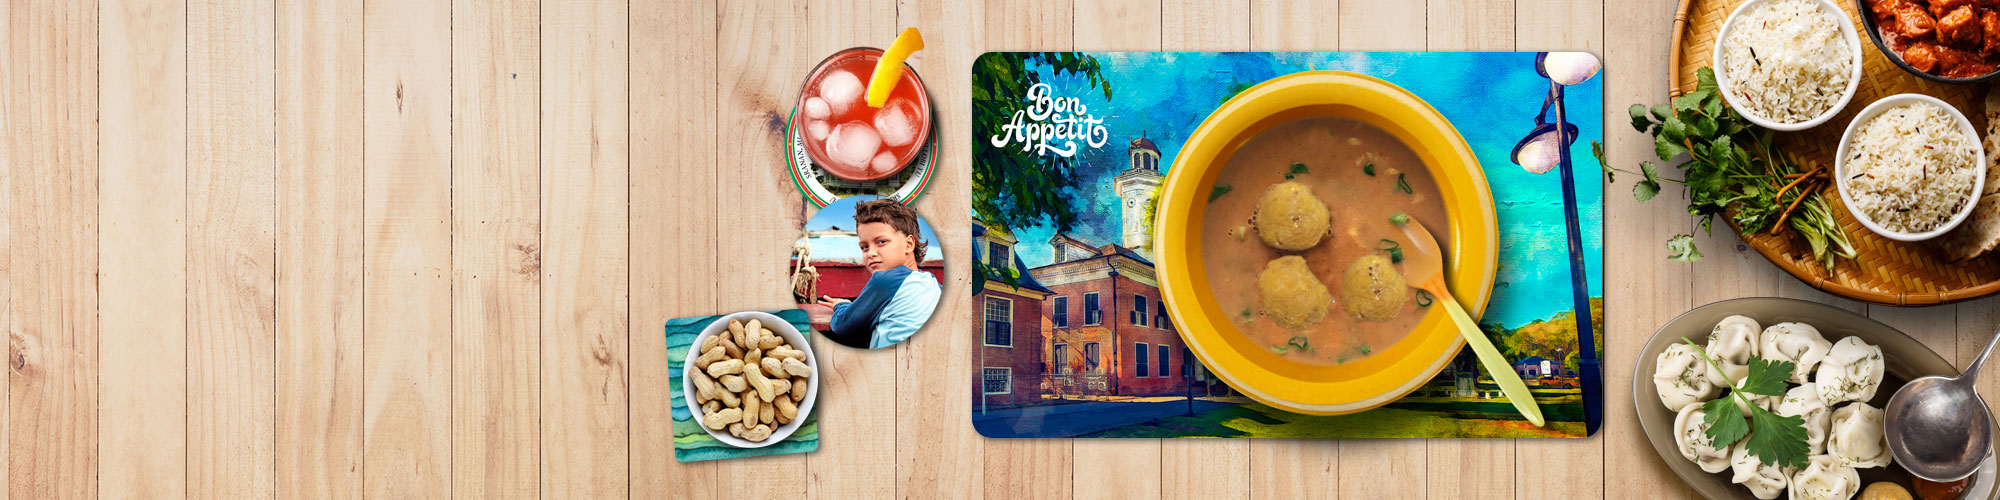 banner_placemats-coasters_2000x500px